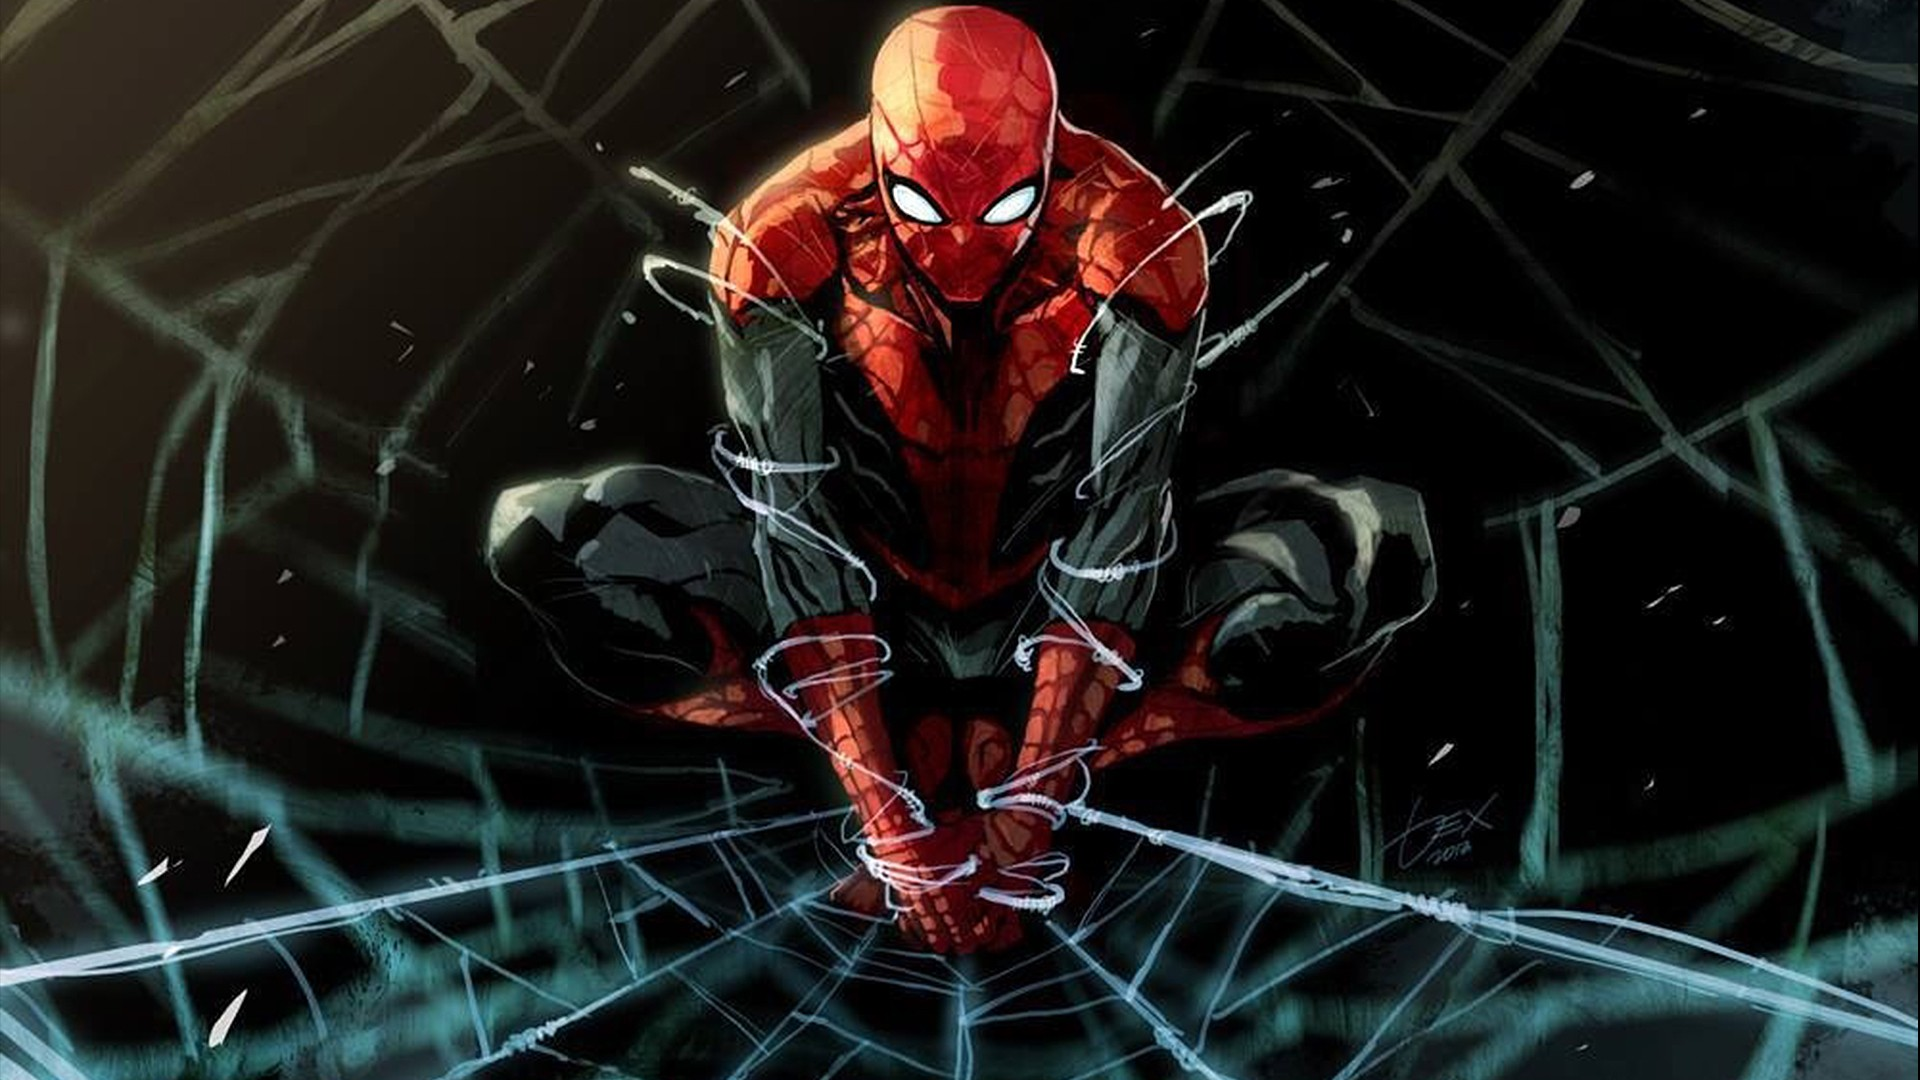 Spiderman Wallpaper HD Free Download